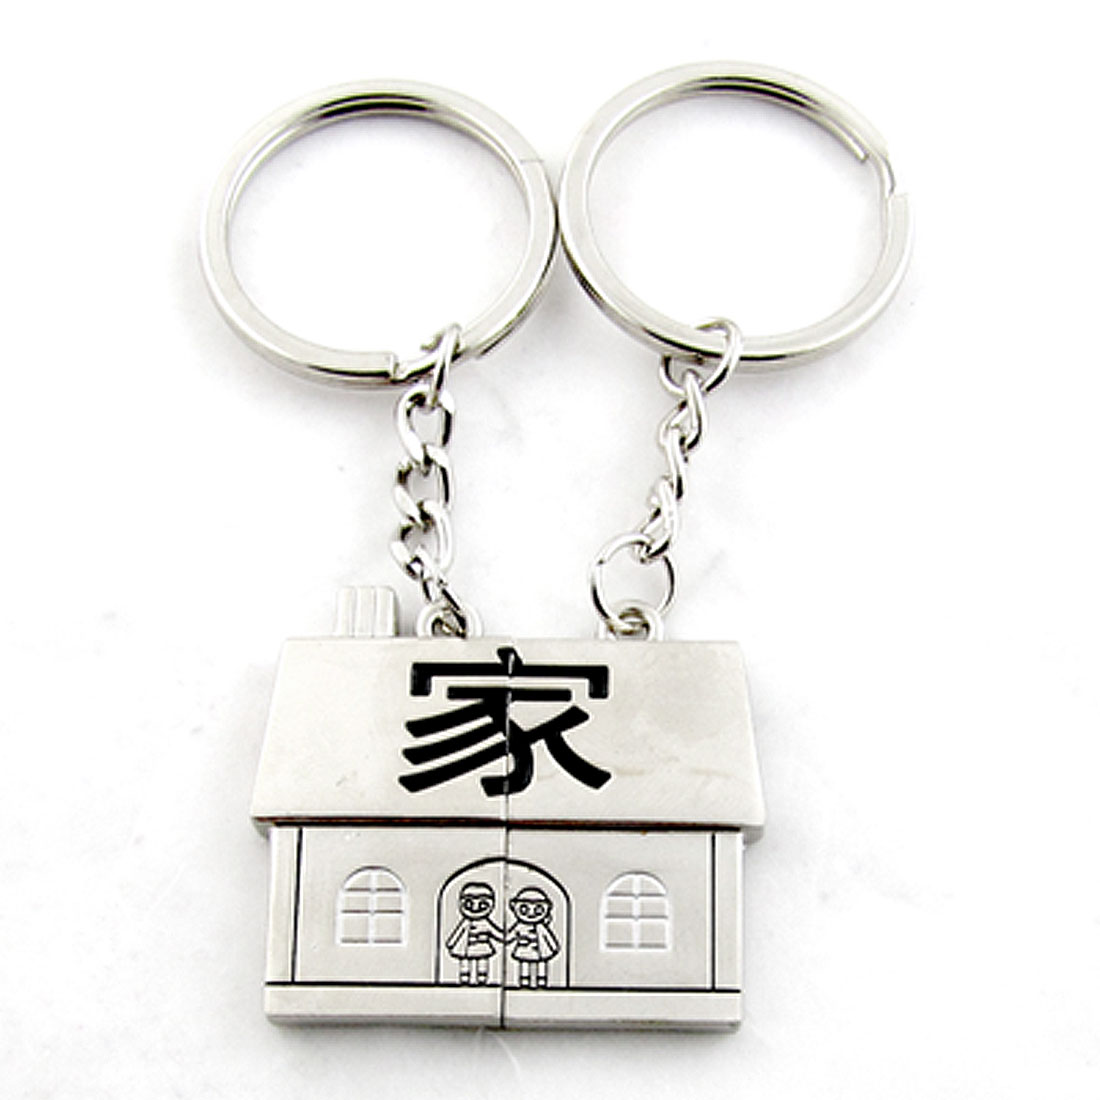 Pair Chinese Home House Shape Magnetic Couple Lovers Key Chain Ring